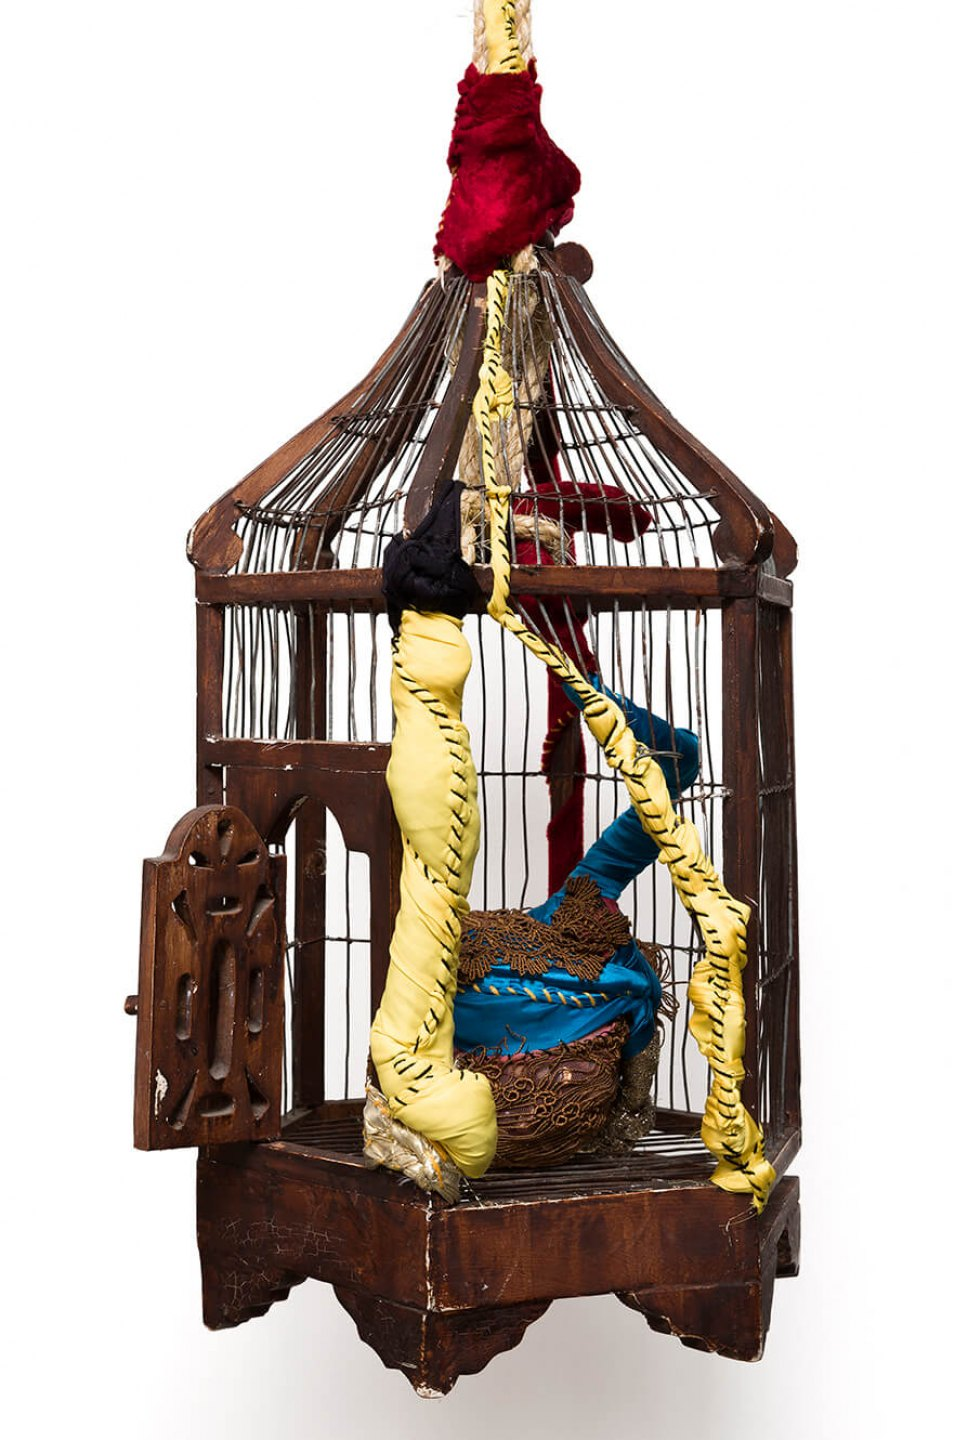 Sonia Gomes, <em>Gaiola</em>, 2016, stitching, bindings, different fabrics and laces wire and wood cage, 185 × 29 cm ø - Mendes Wood DM